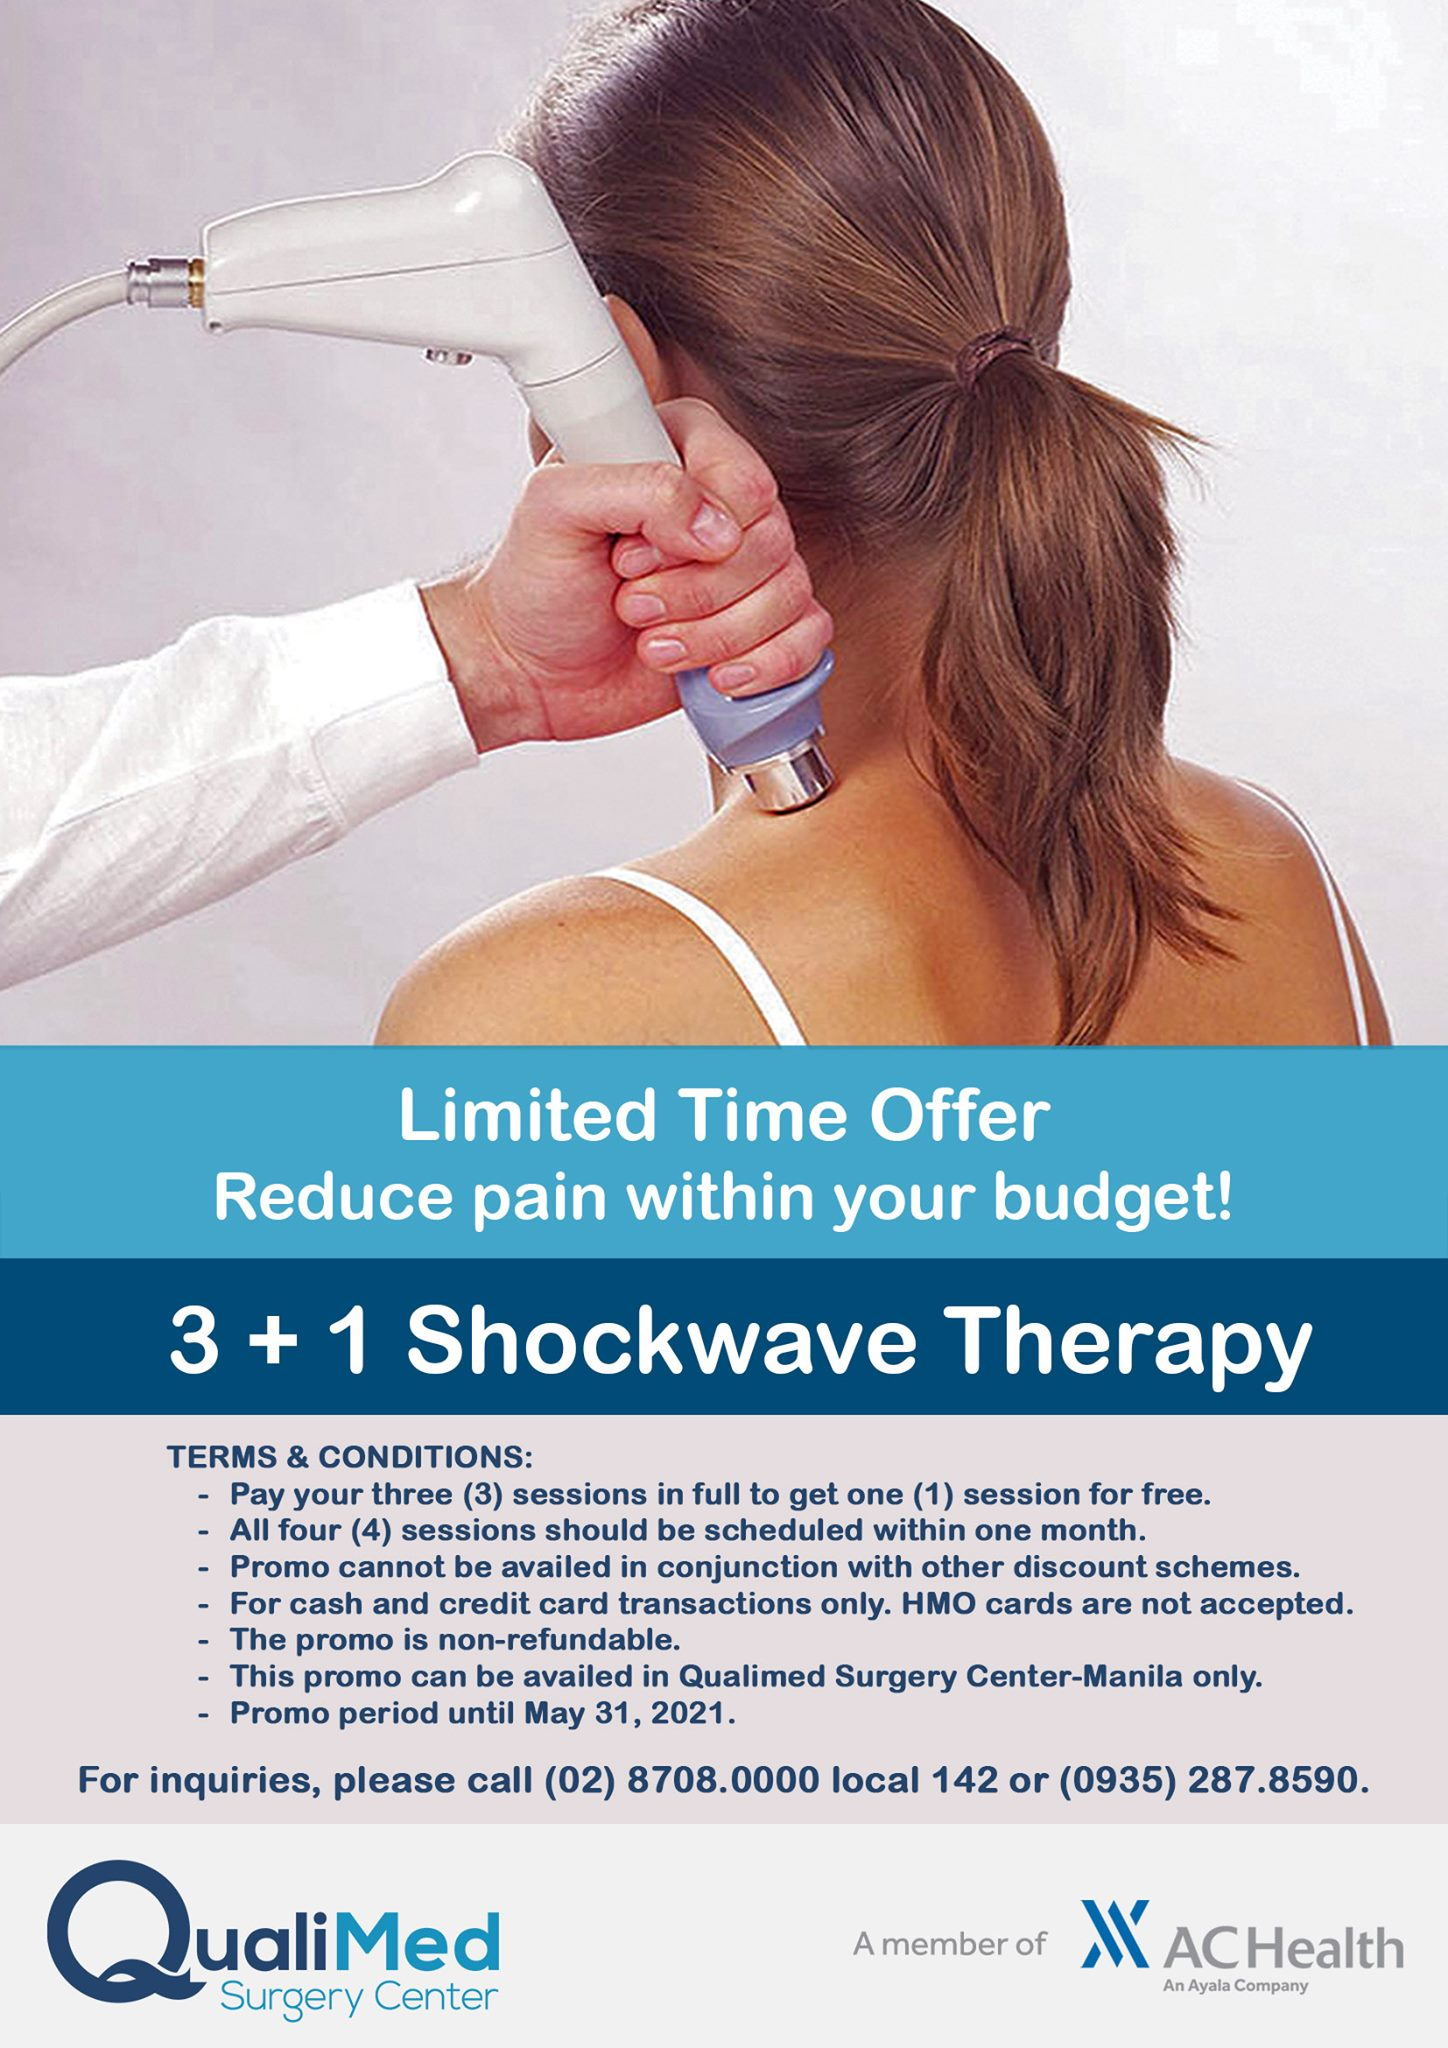 QualiMed Surgery Center  Manila – 3+1 Shockwave Therapy